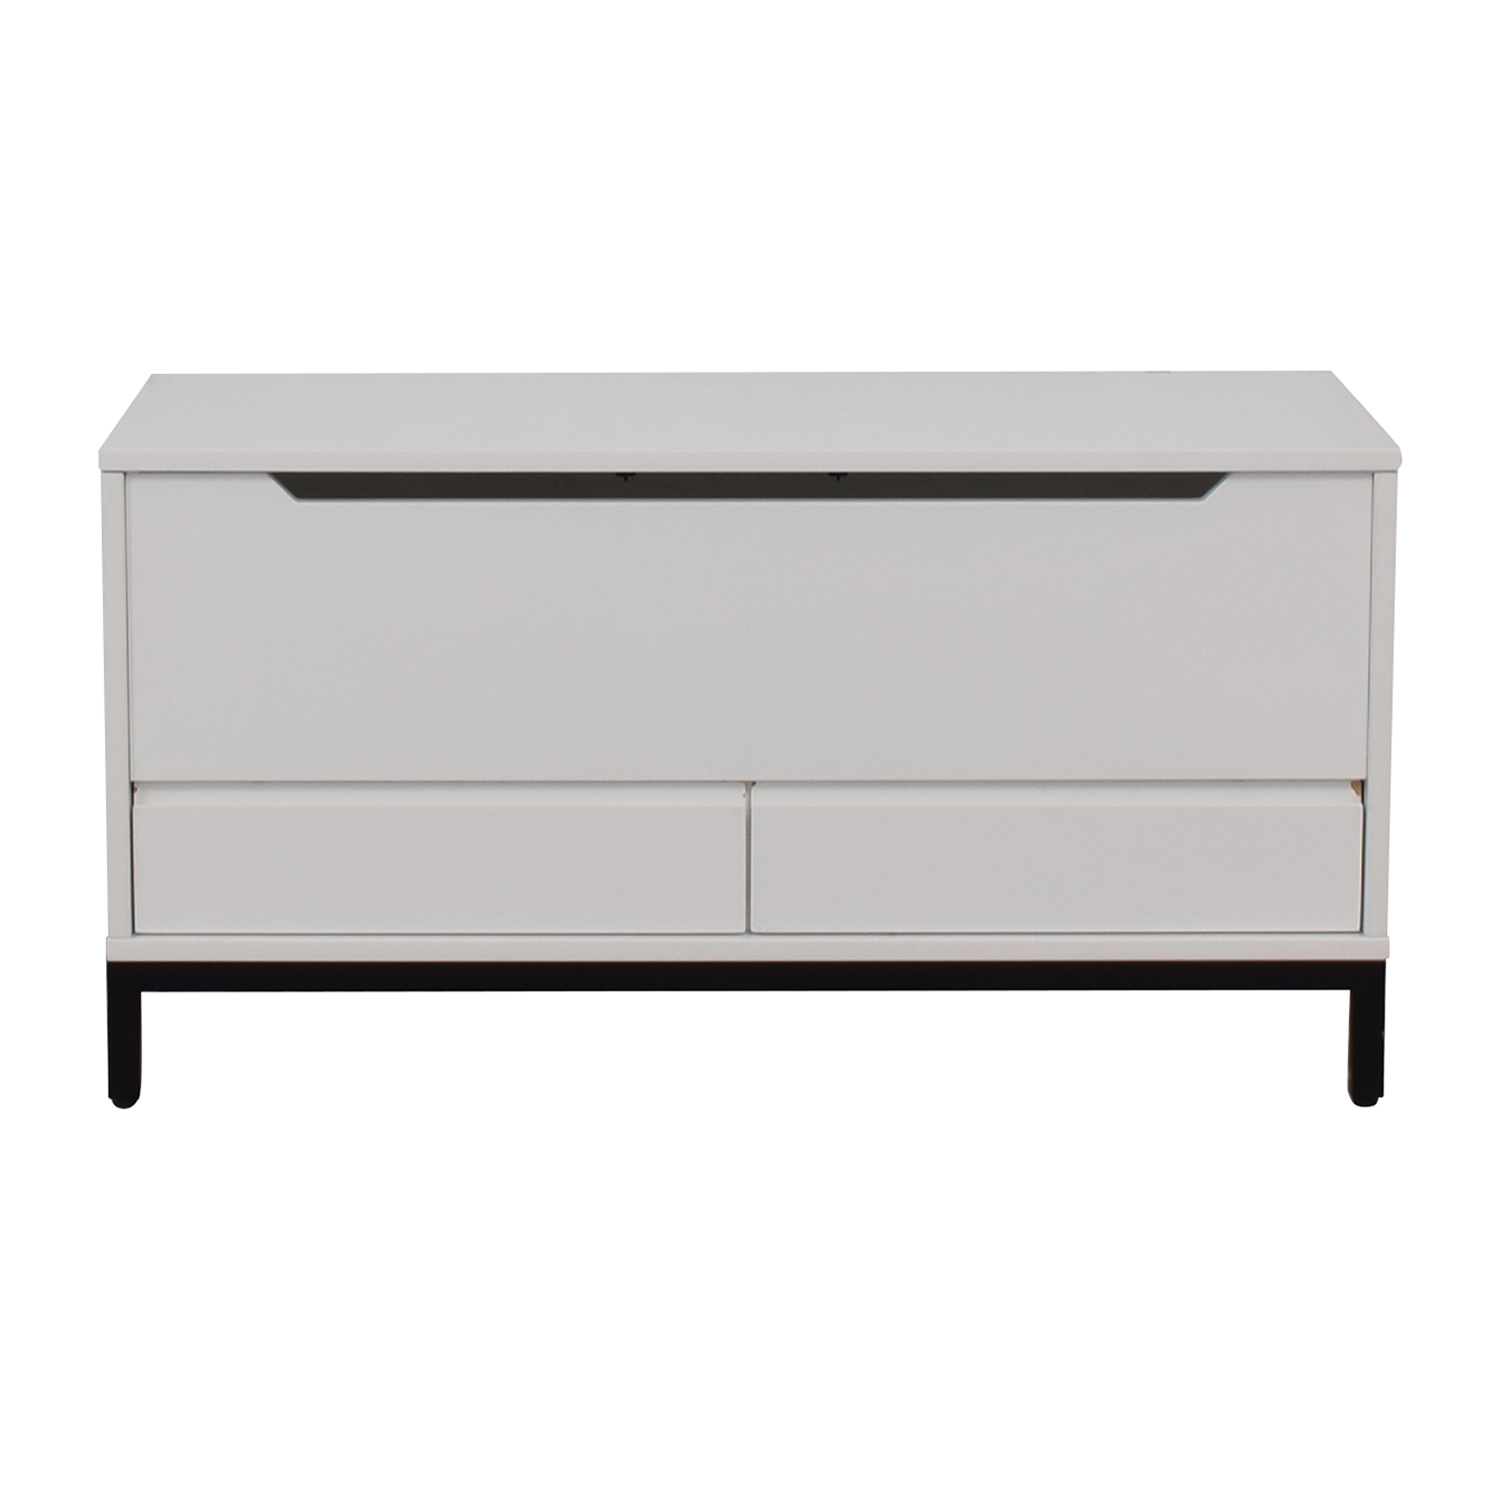 Land of Nod Land of Nod White Two-Drawer Storage Bench second hand